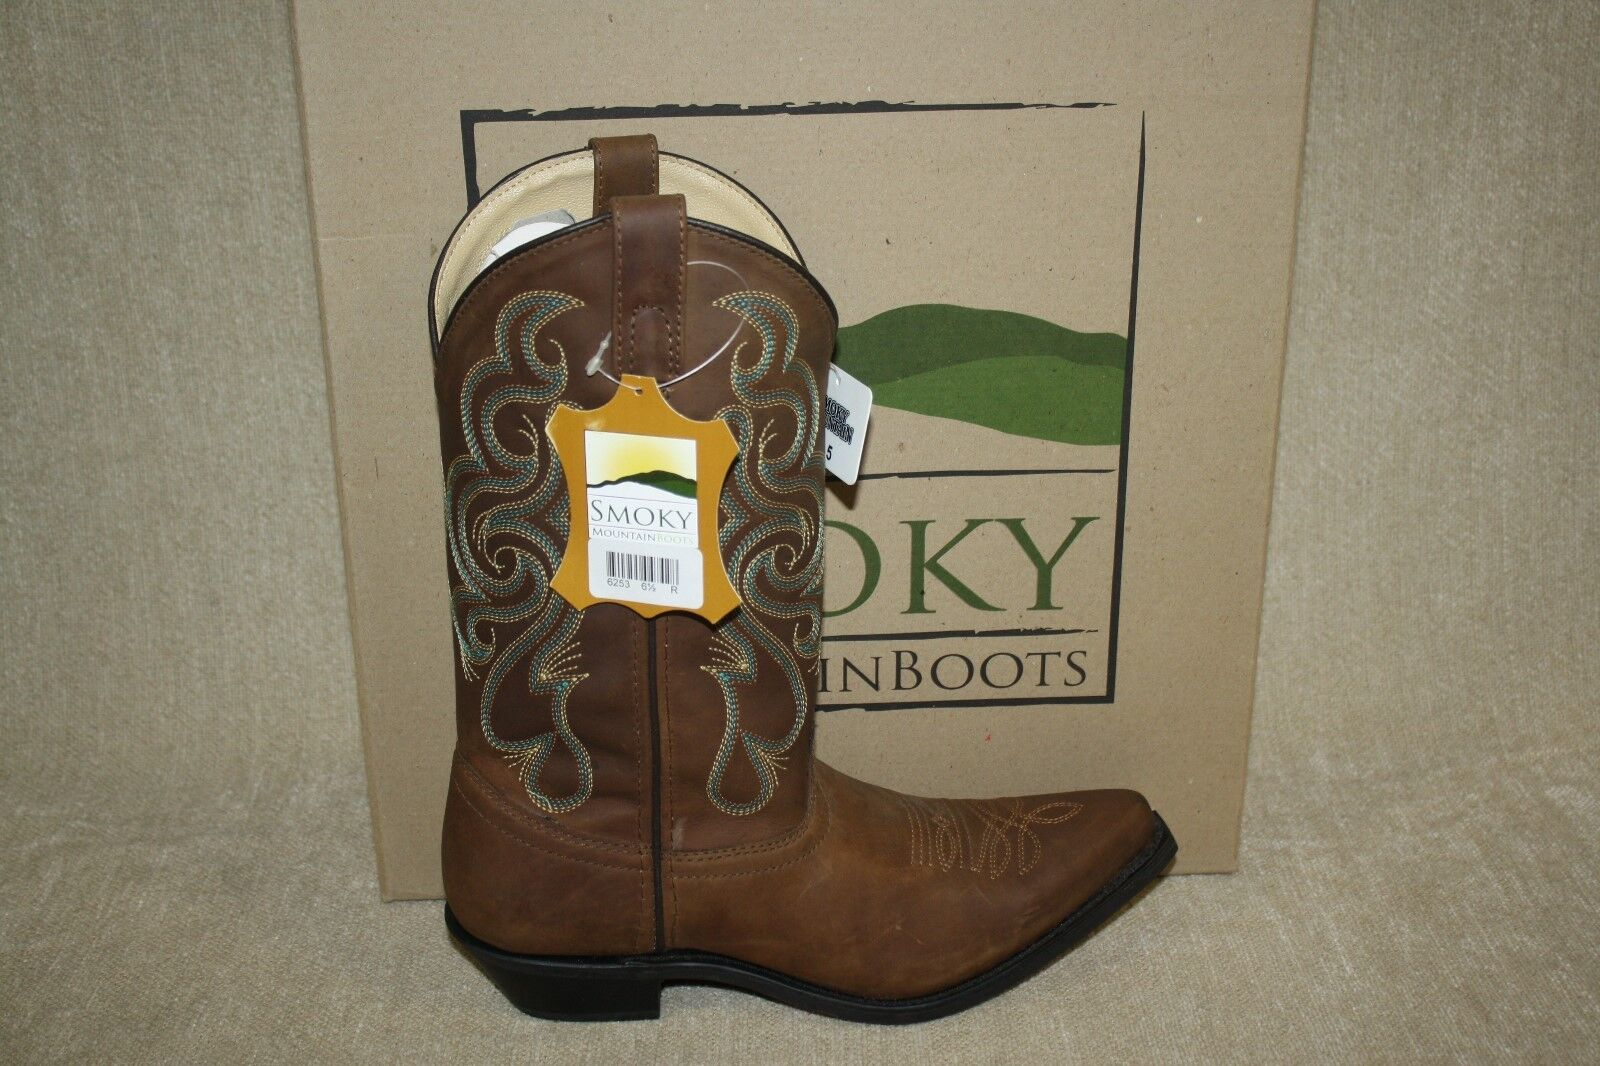 WOMENS SMOKY MOUNTAIN BOOTS BROWN 6253 BRISTOL  6253 i8 a